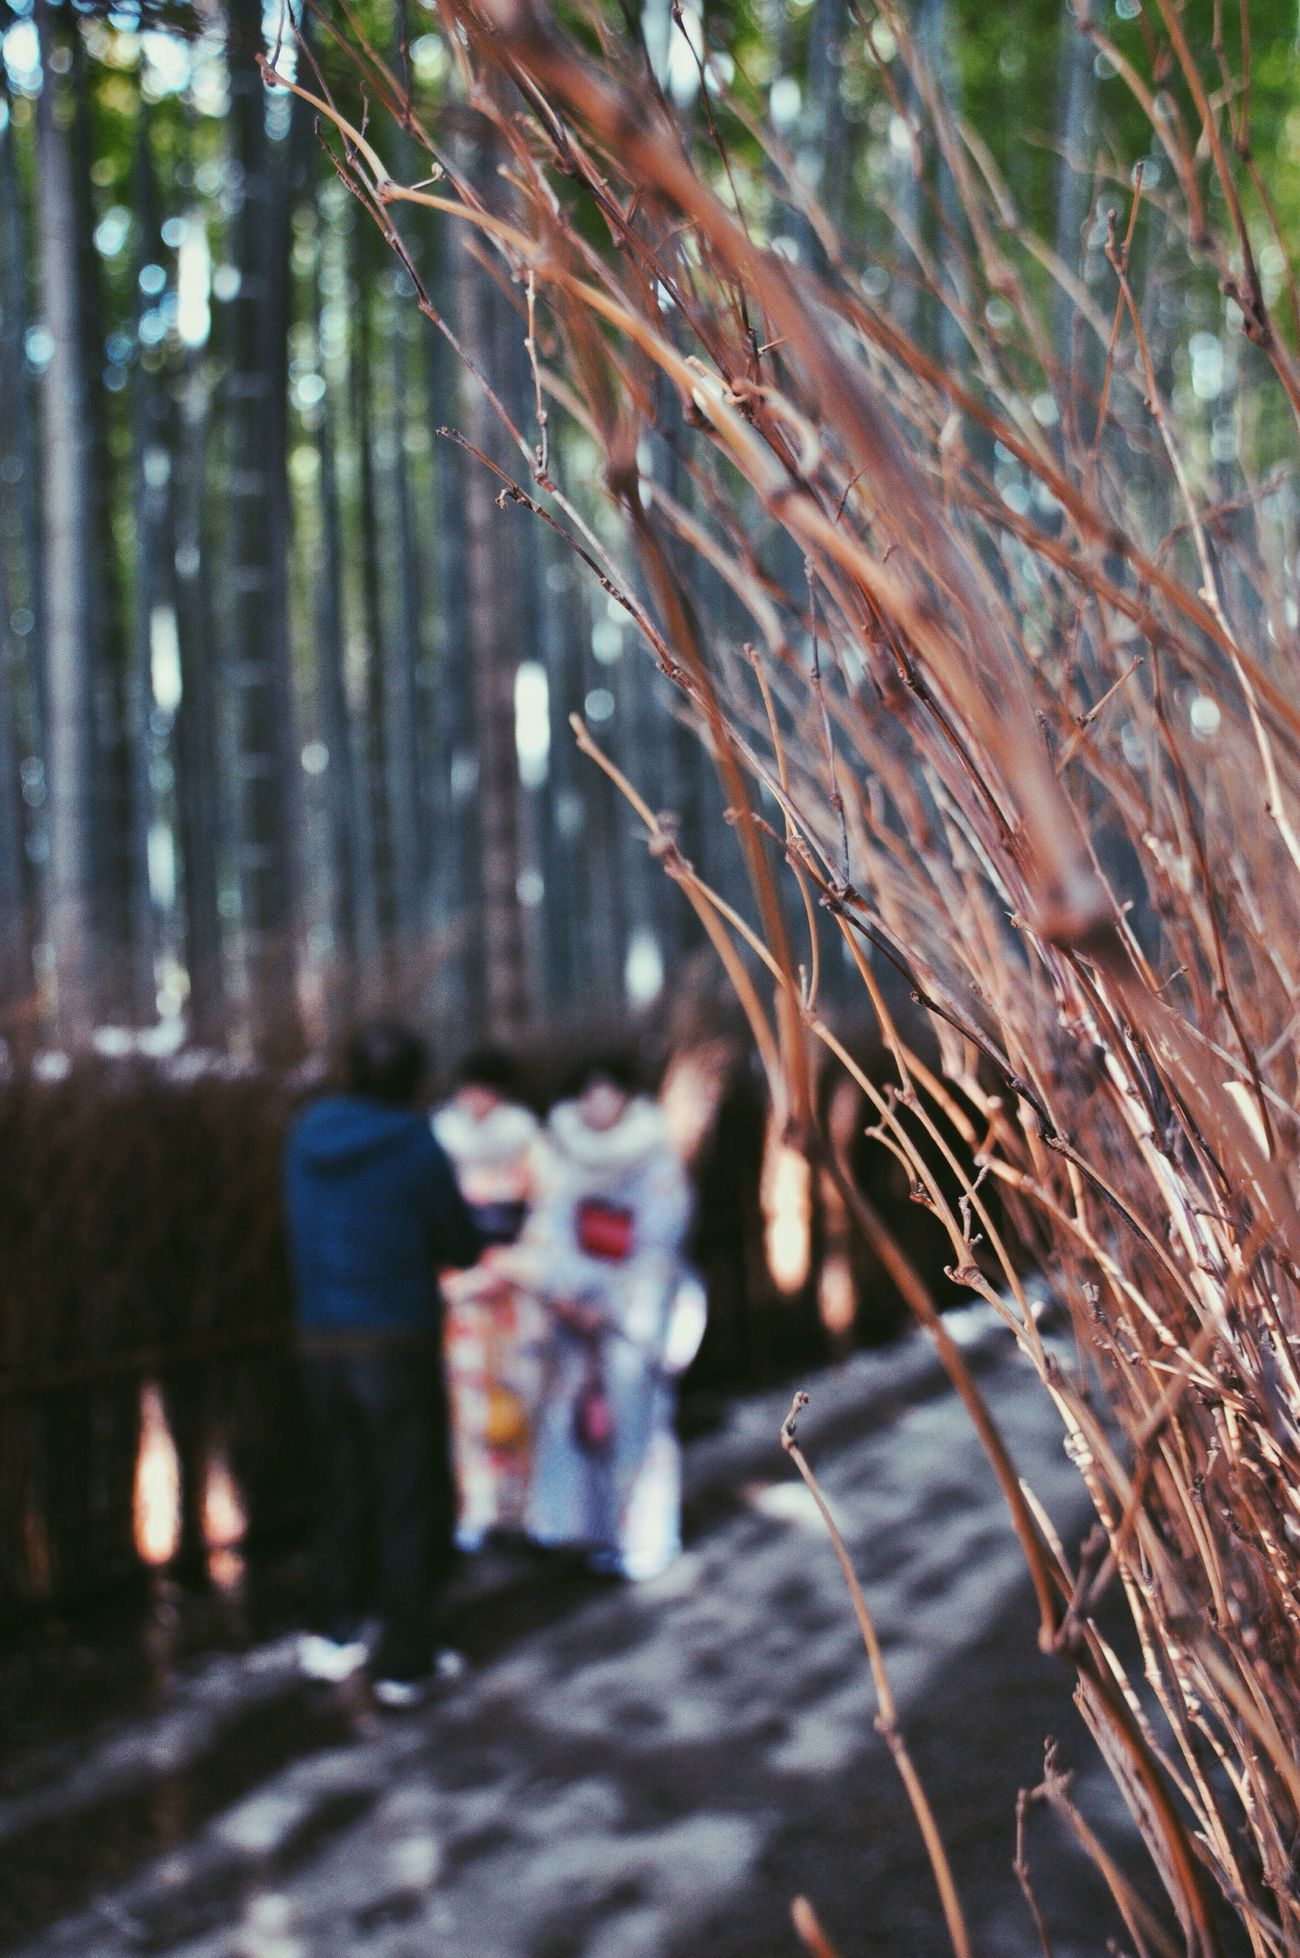 Real People Lifestyles Men Tree Outdoors Women Nature Day Bamboo Grove